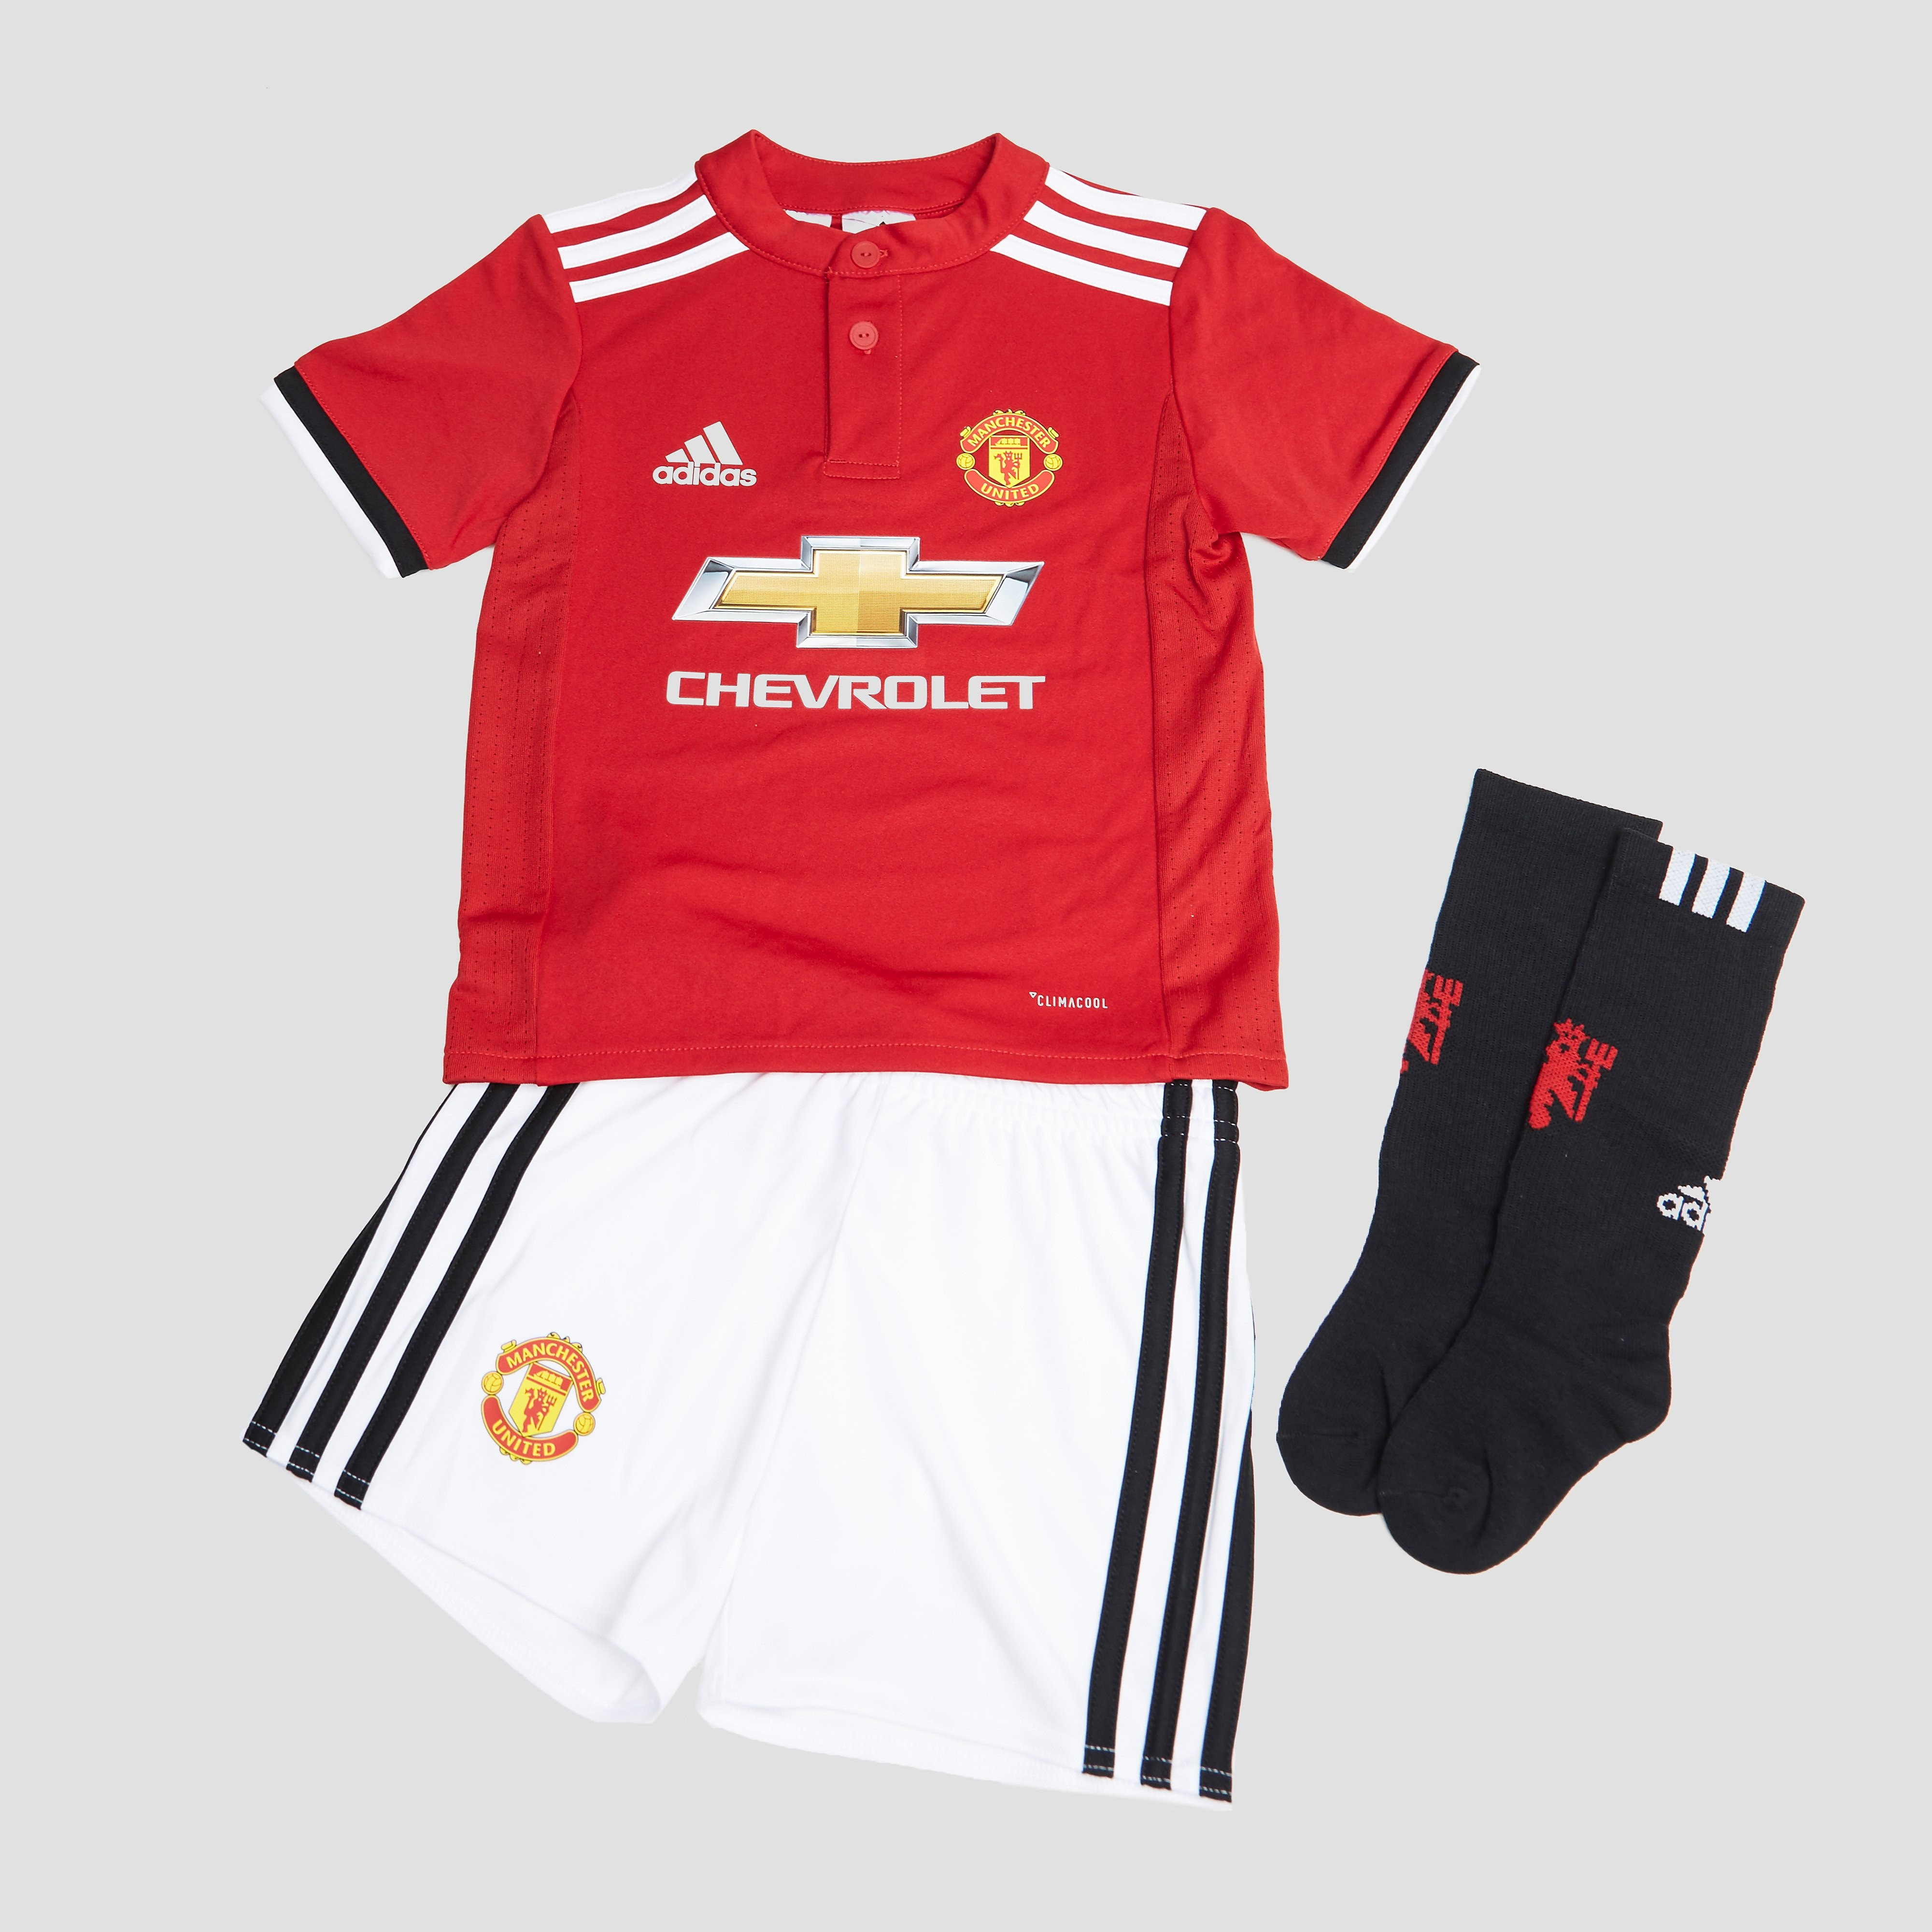 ADIDAS MANCHESTER UNITED FC THUISTENUE ROOD/WIT JONGENS